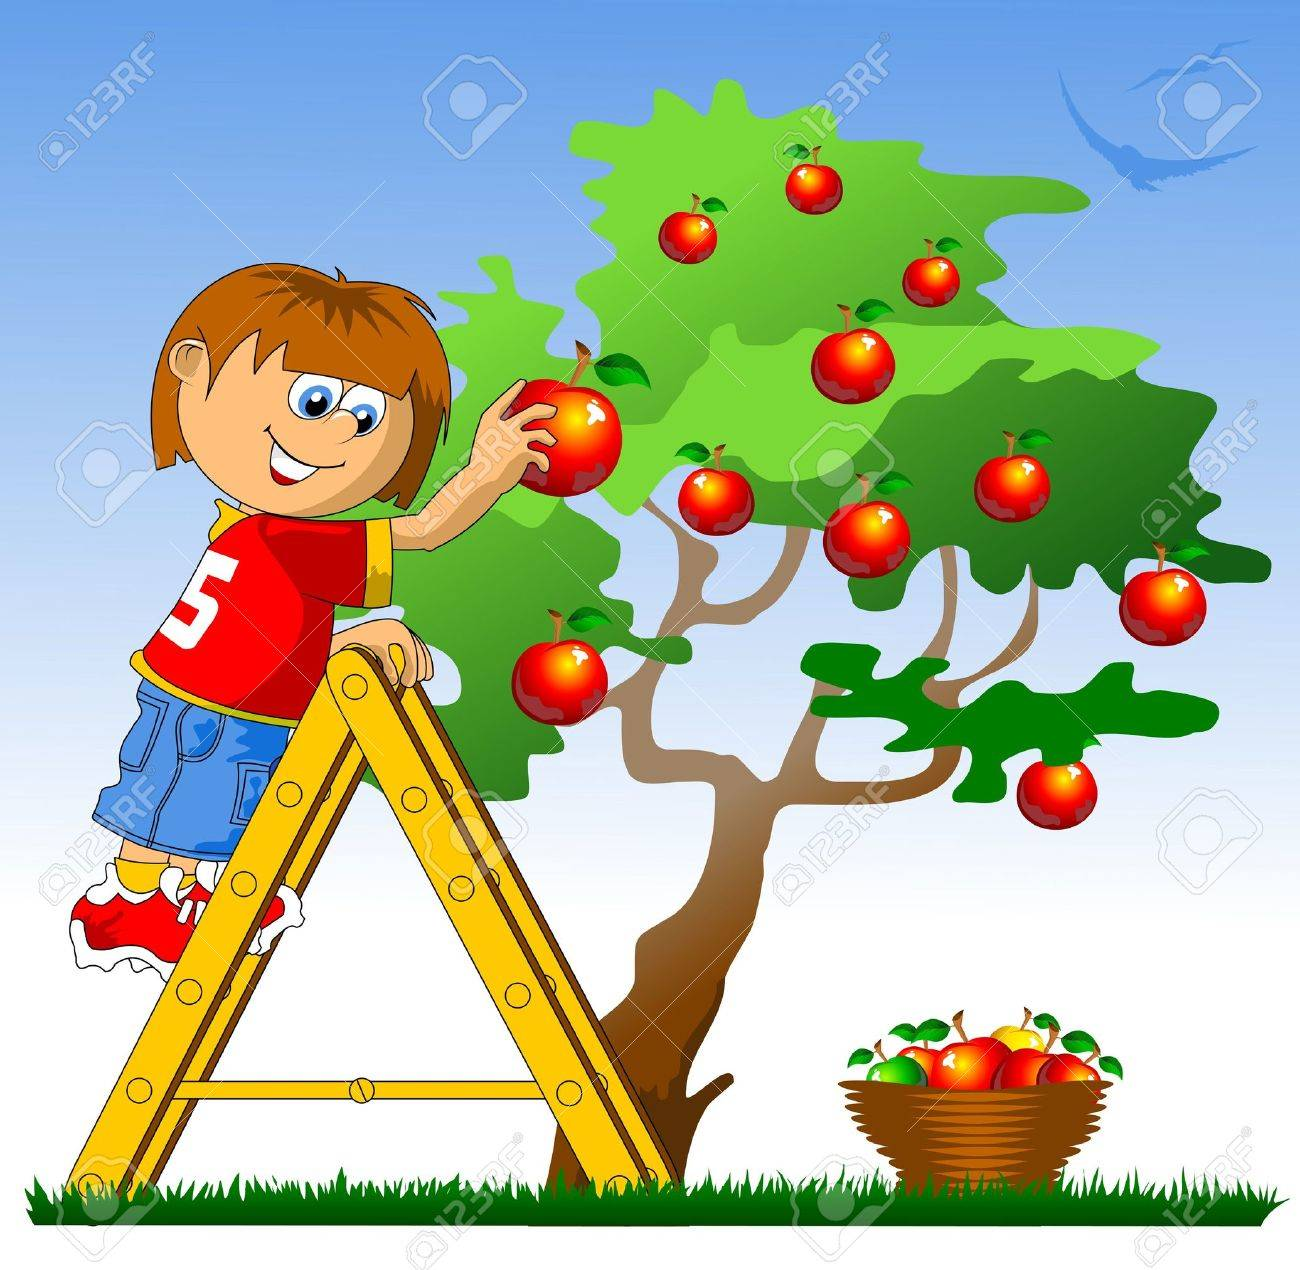 little boy collects red apples  vector illustration ; Stock Vector - 17563517